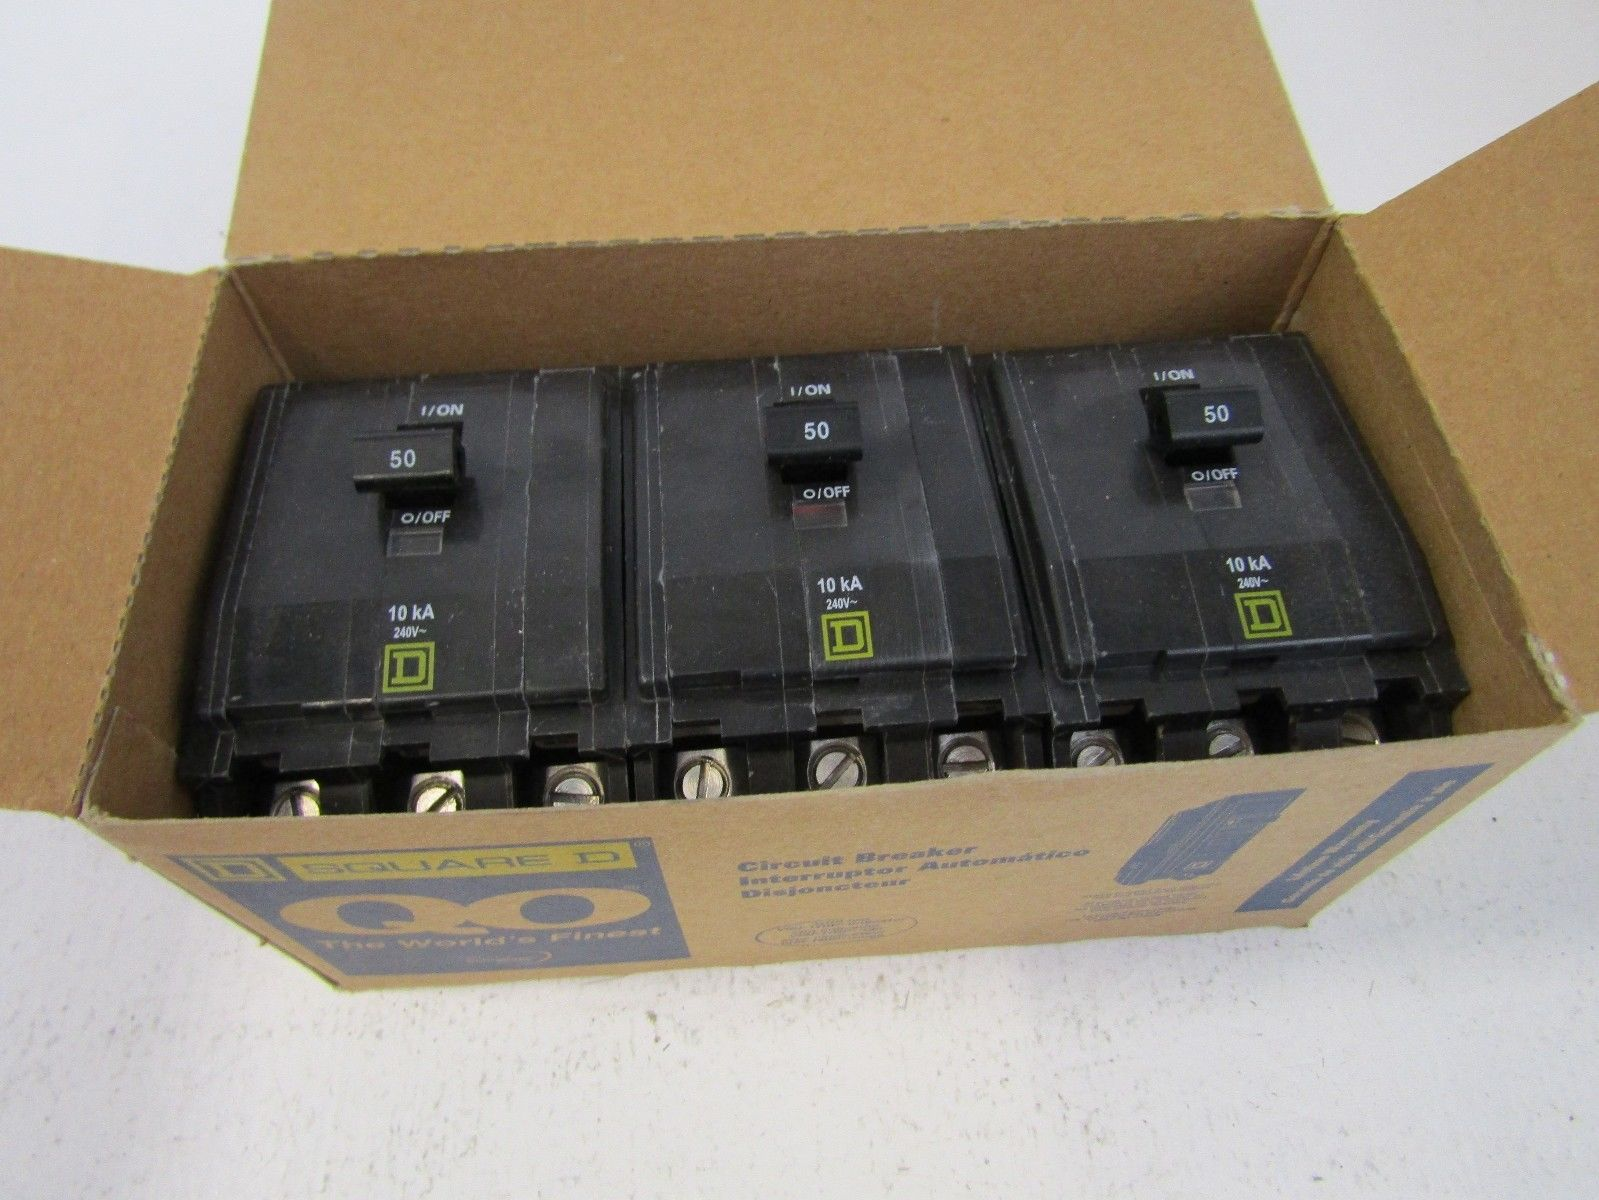 Square D Qd Breaker Best New Qo Pole Amp Qwikgard 15 Singlepole Gfci Circuit Cheap Lot Of Breakers Fits Nq With